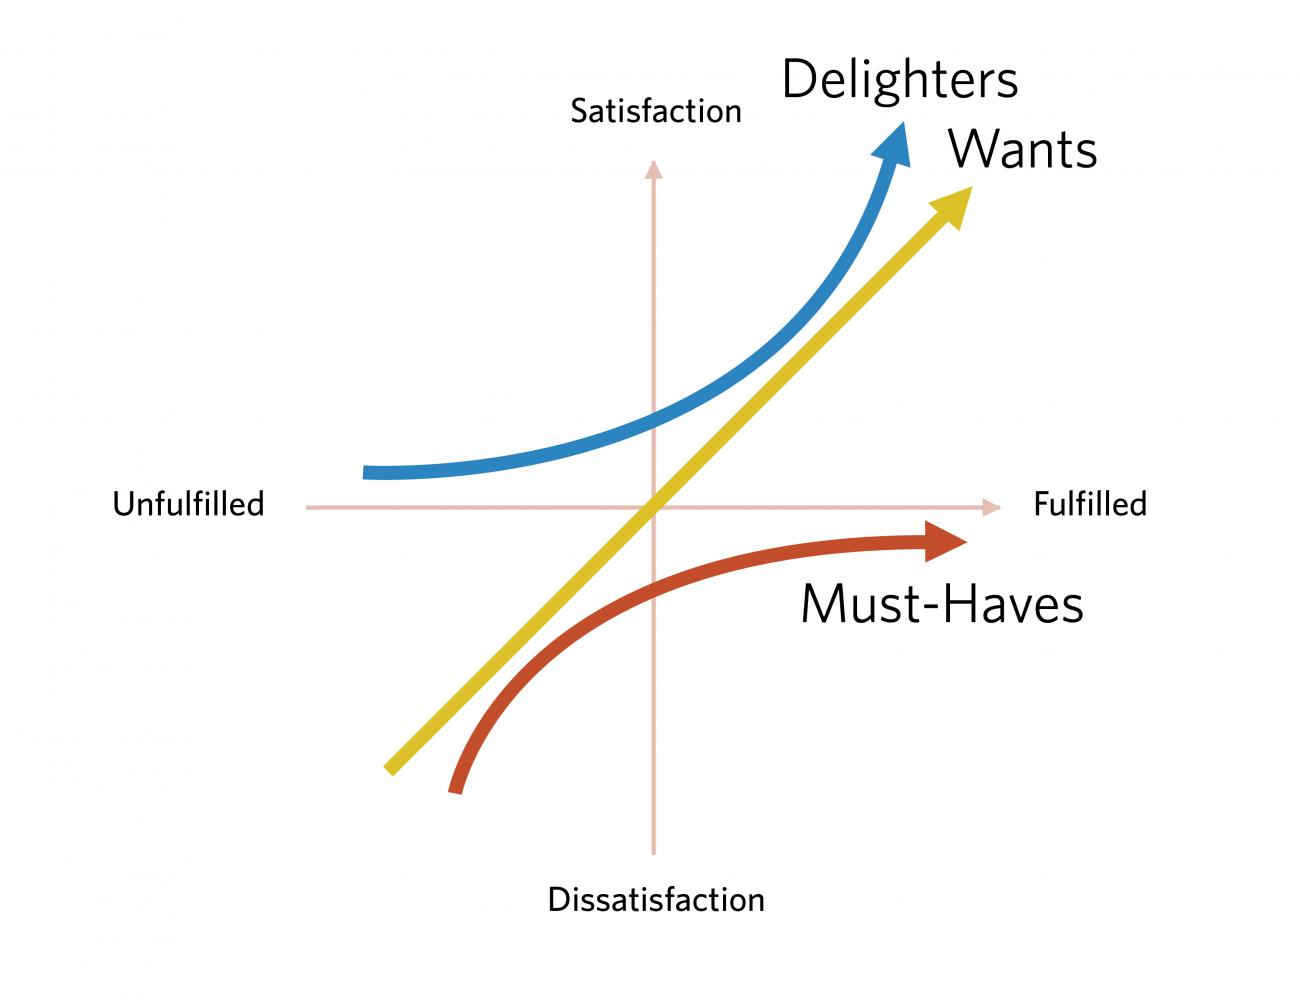 The kano model shows must have needs below the satisfaction threshold, with wants split above and below, and delighters above the threshold.